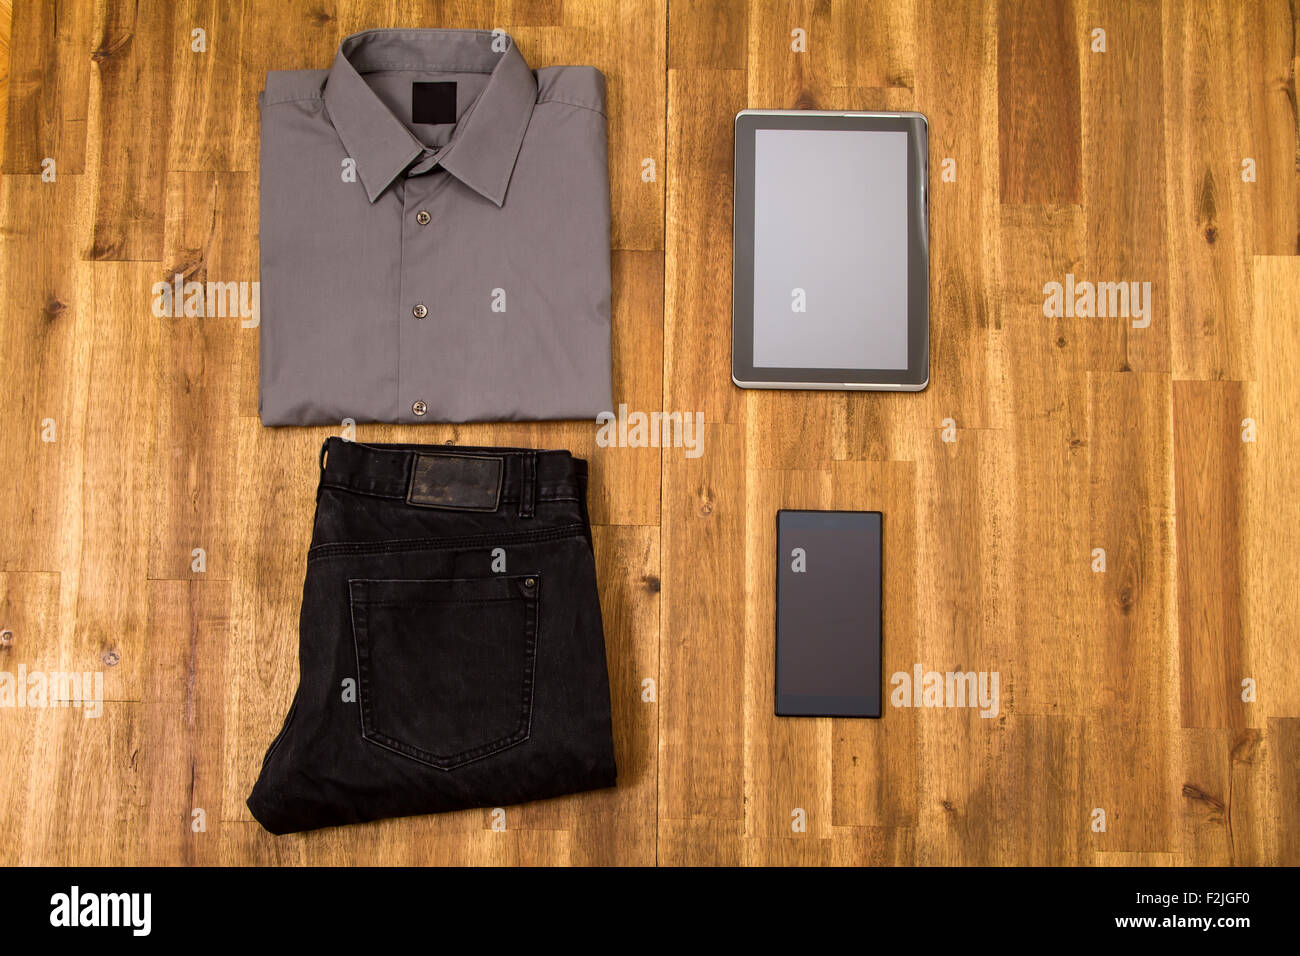 Informal male outfit with electronics, background - Stock Image